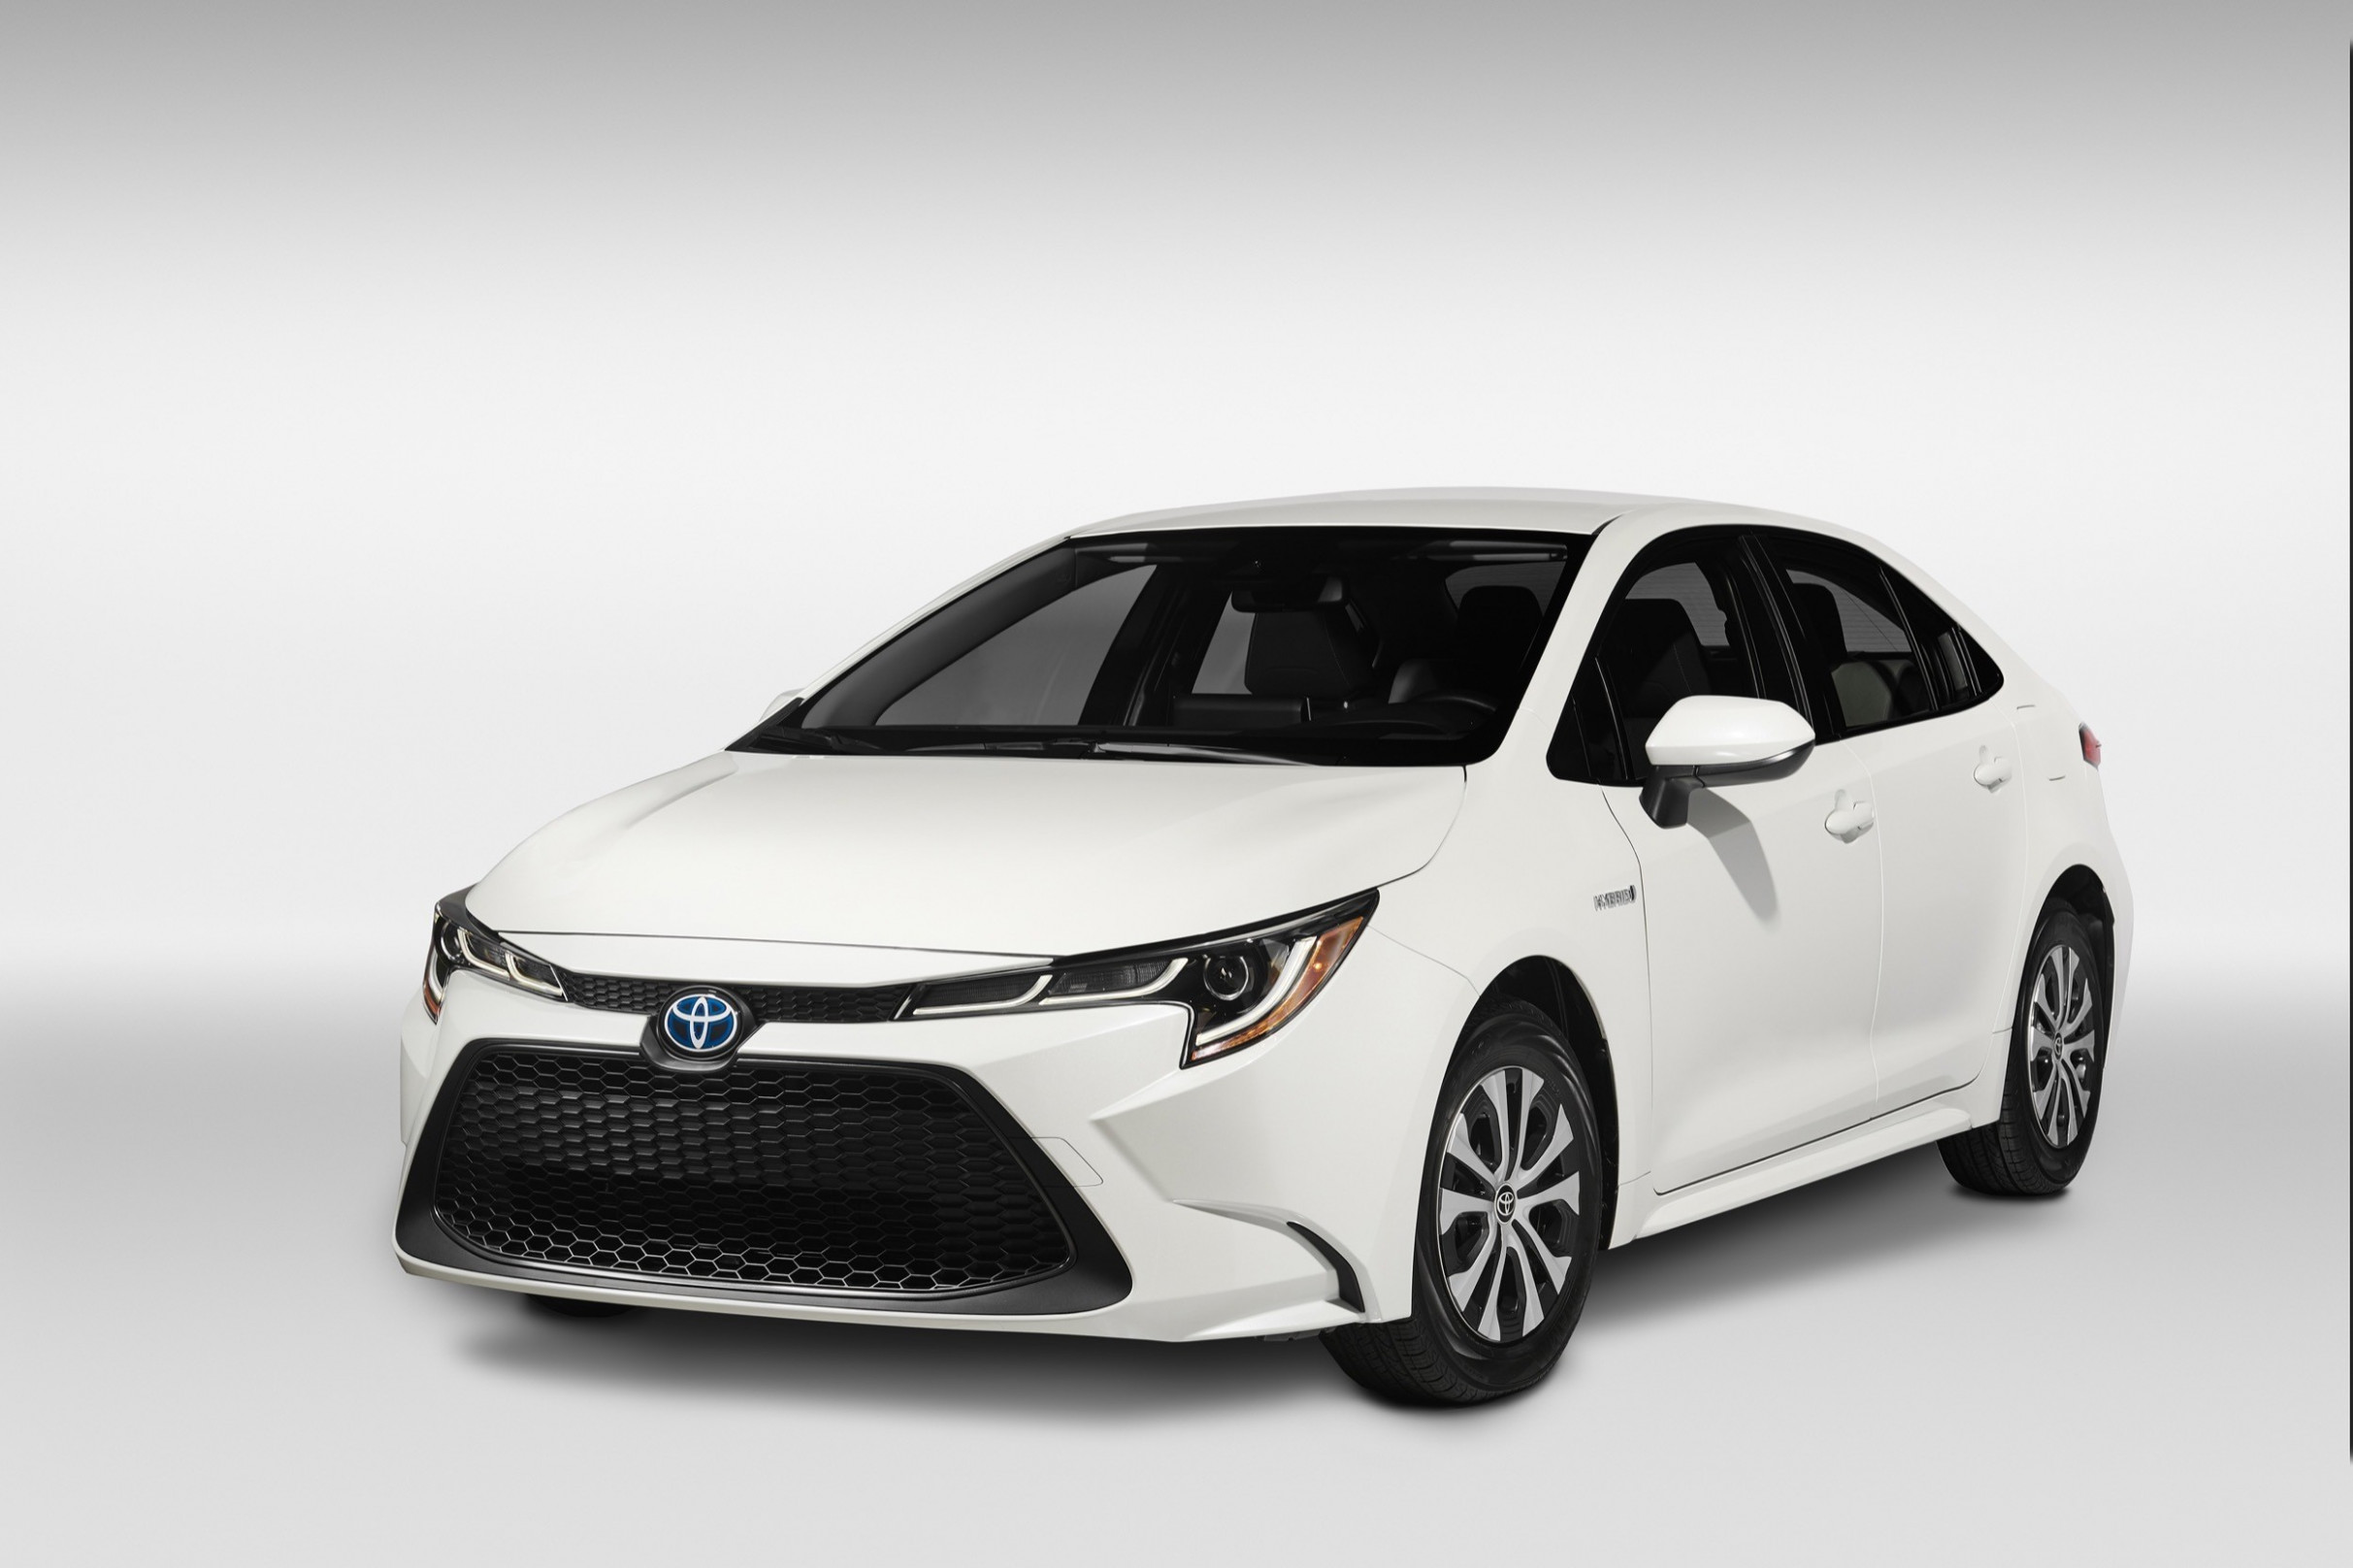 Performance When Will The 2022 Toyota Corolla Be Available